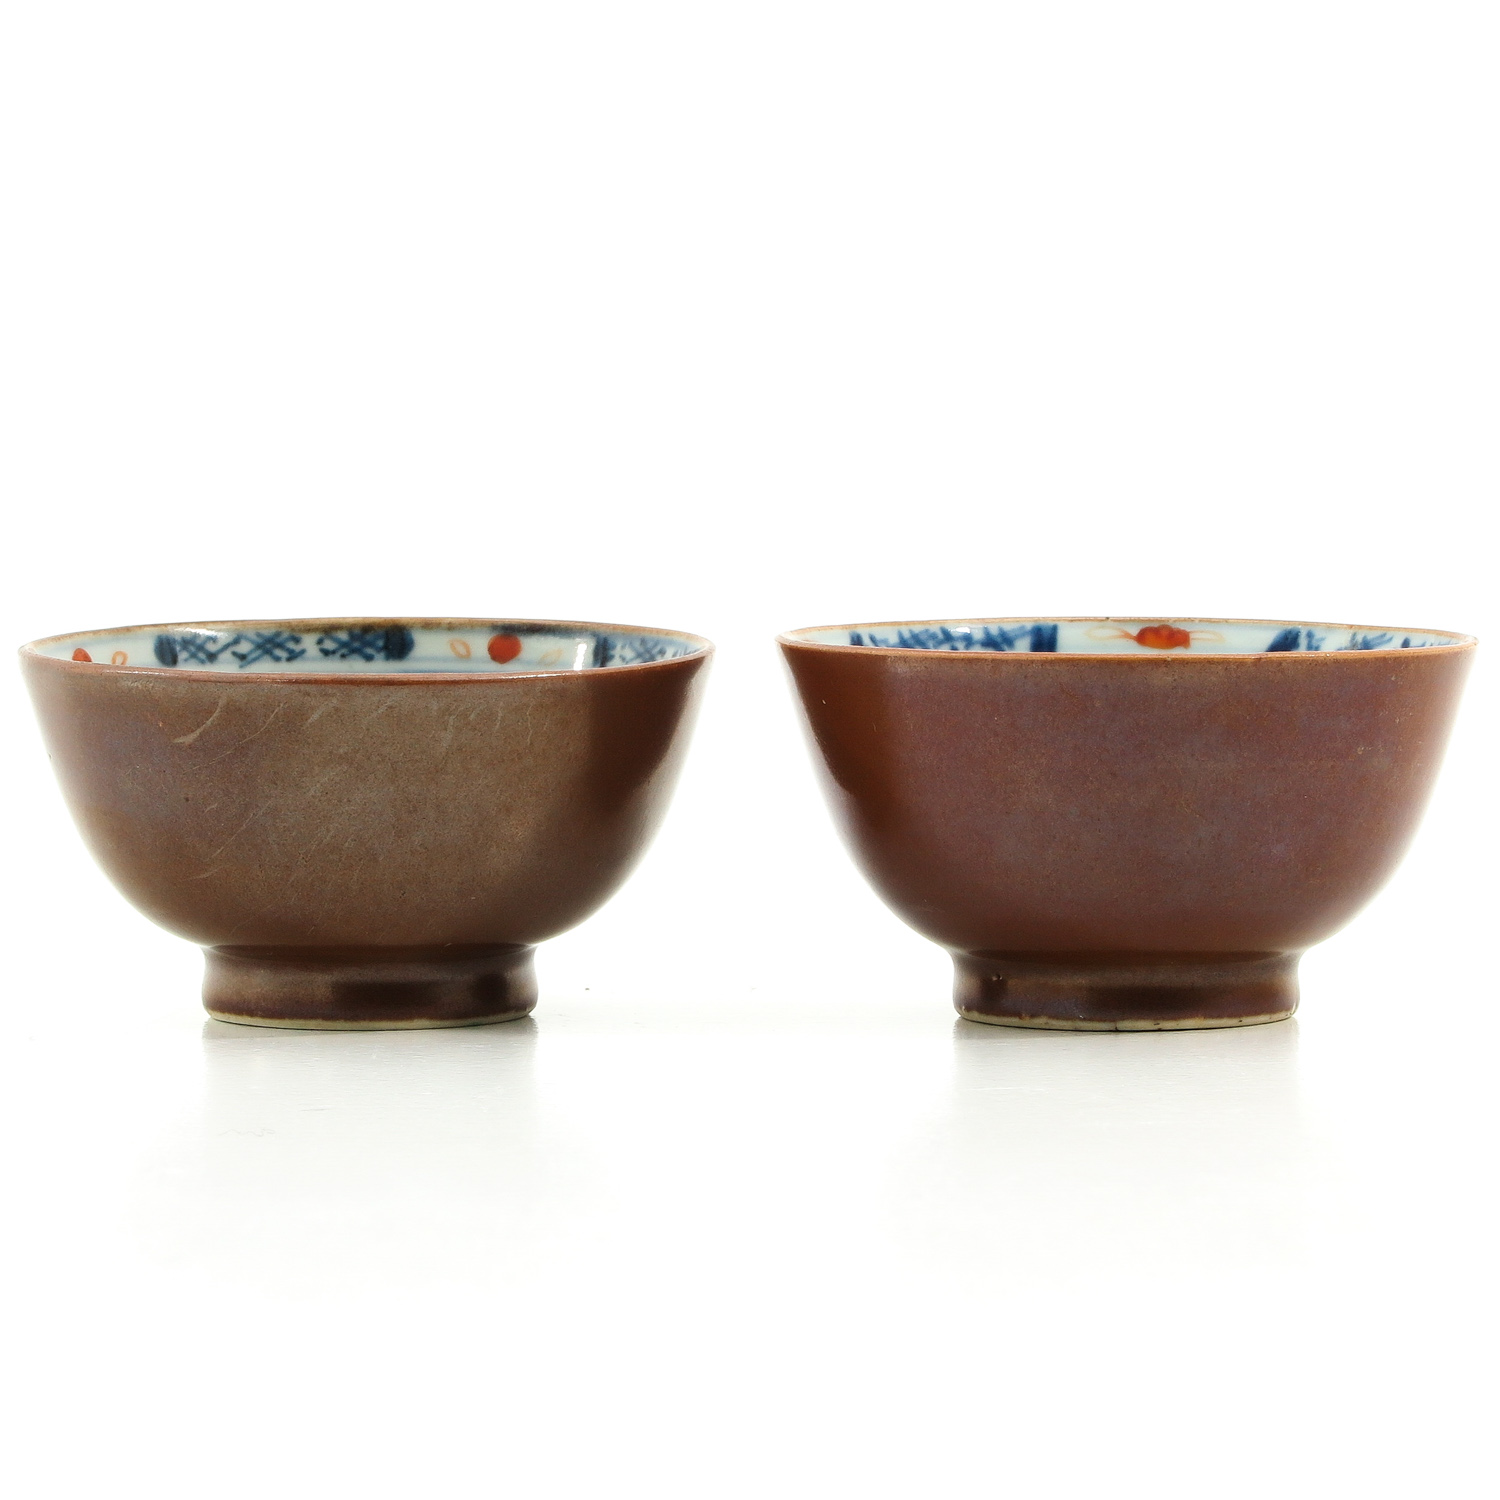 A Pair of Batavianware Cups and Saucers - Image 4 of 9